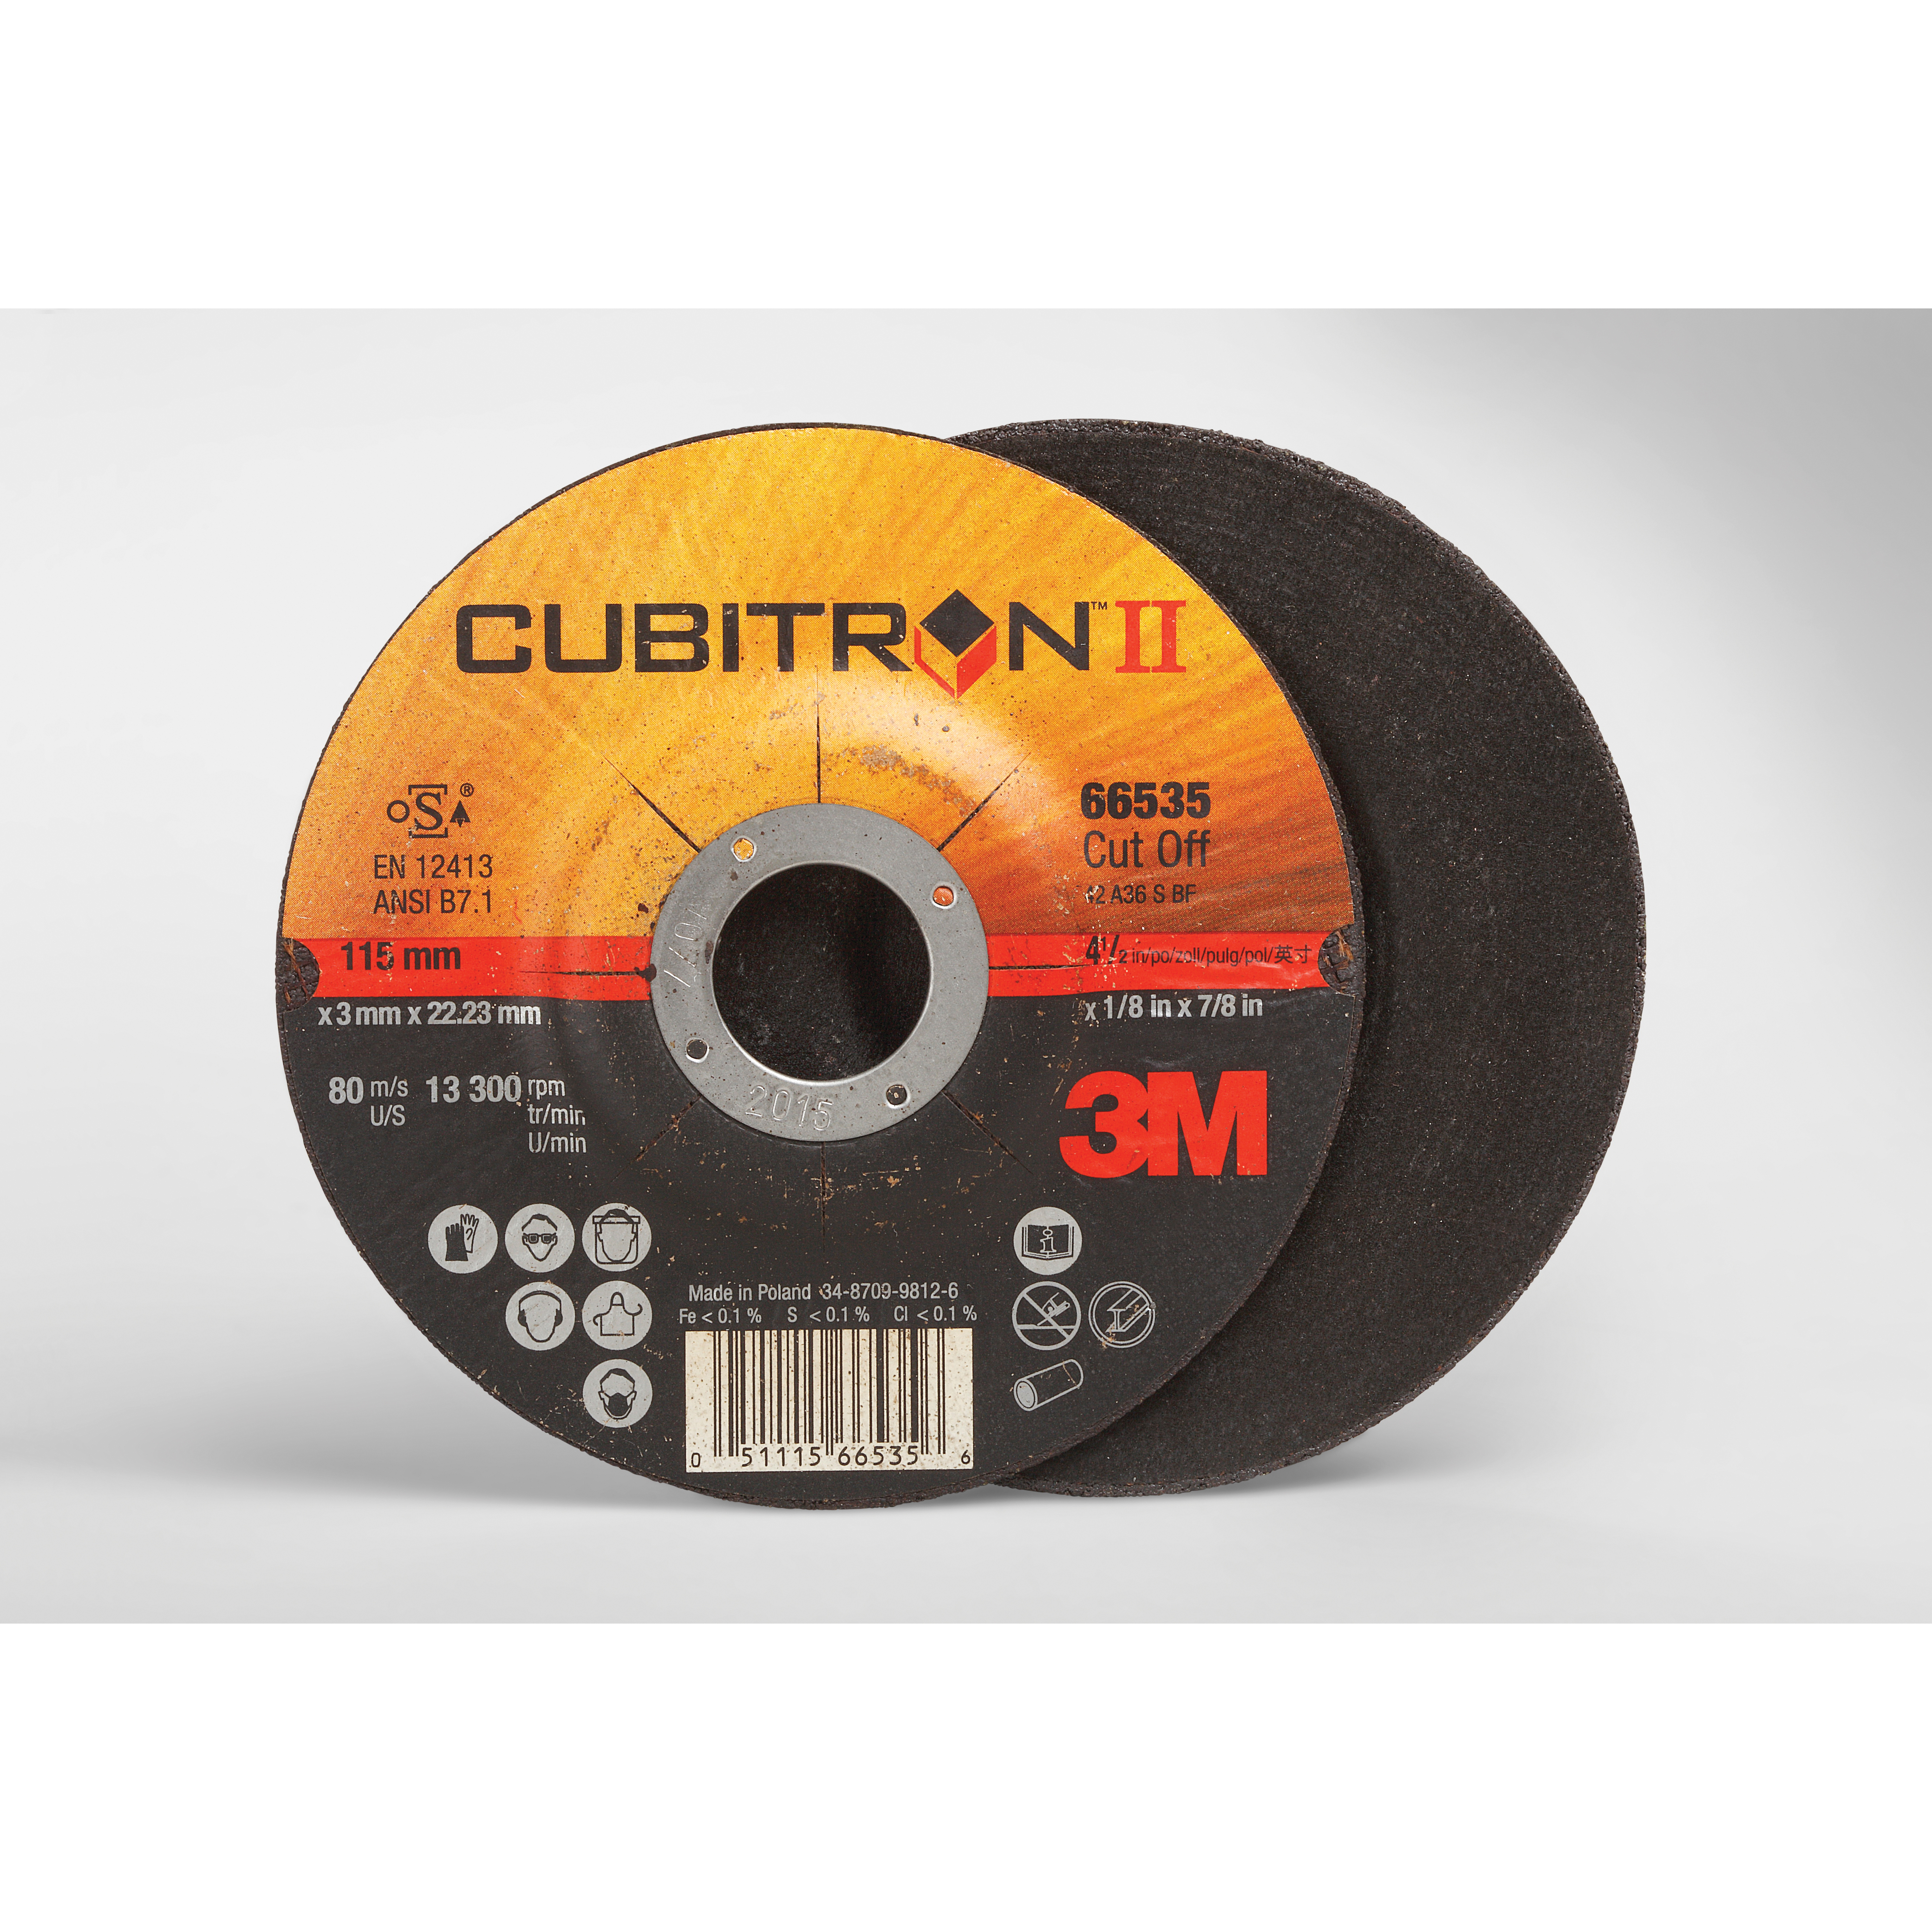 Cubitron™ II 051115-66530 COW Type 27 Cut-Off Wheel, 4-1/2 in Dia x 0.045 in THK, 60 Grit, Precision Shaped Ceramic Abrasive